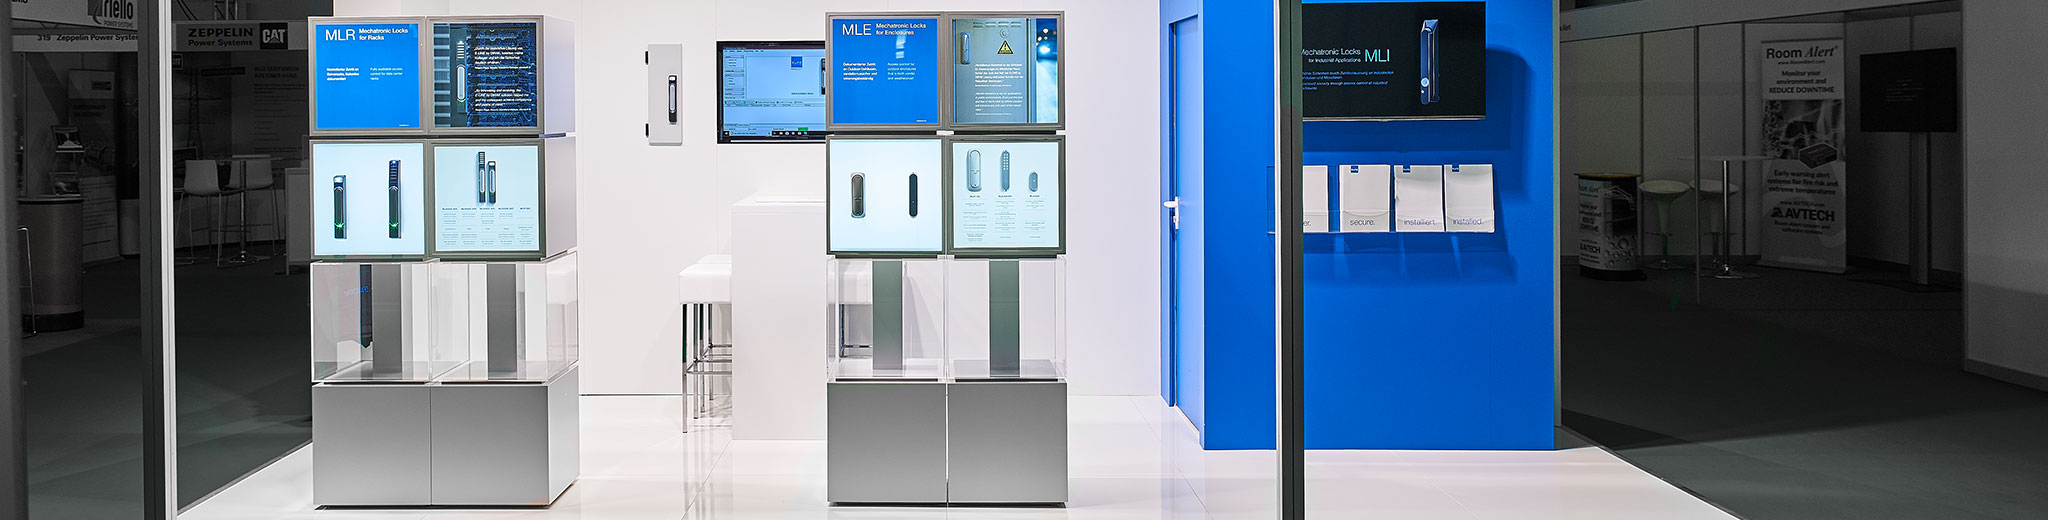 E-LINE booth at the trade fair DCW Frankfurt